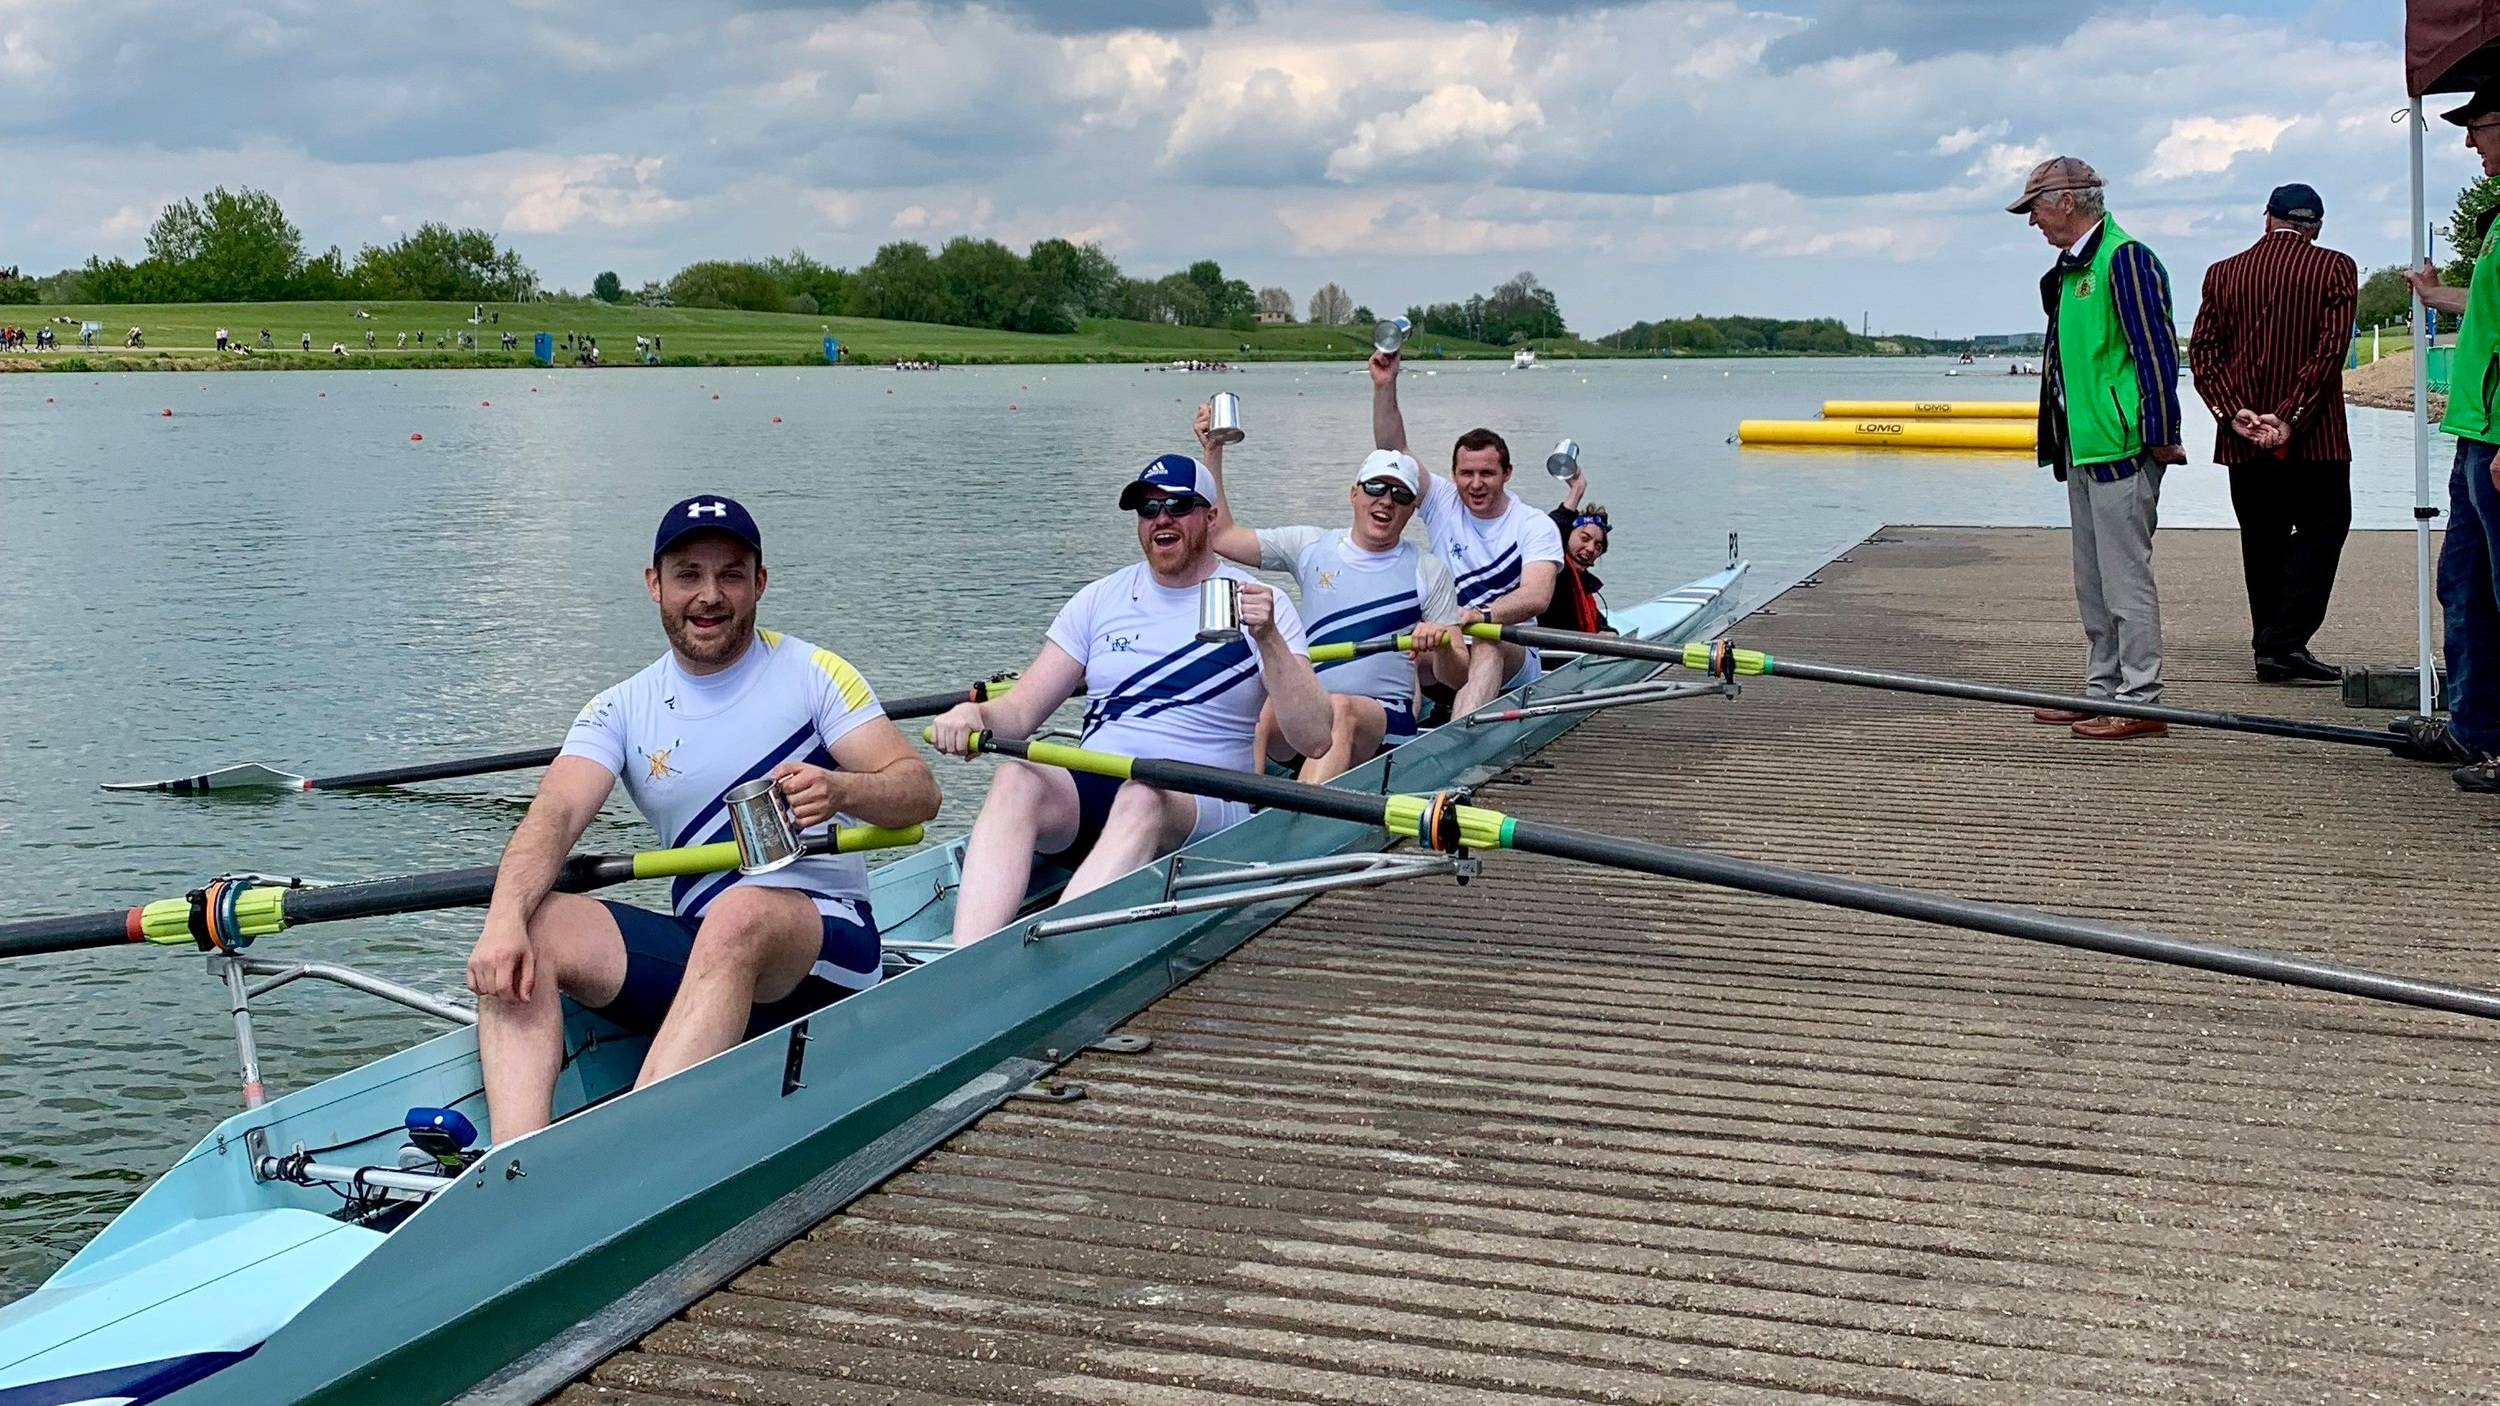 Congratulations to Gui, Grant, Danila, Darryl and cox Sophie for winning their men's 4+ event!